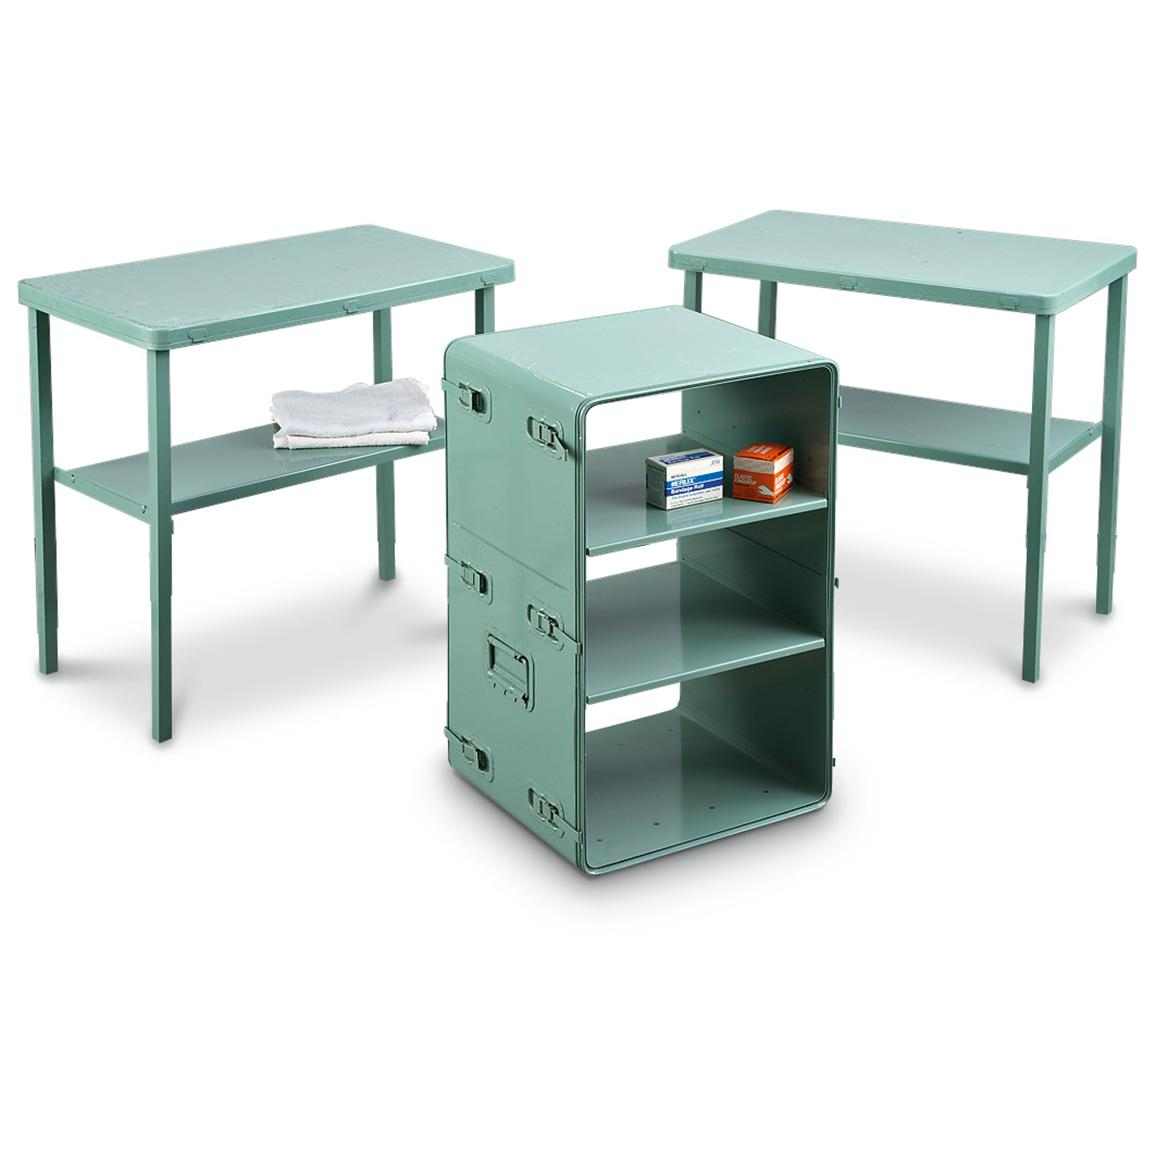 Details About Us Military Surplus Medical Supply Tables With Shelves  Vintage Green, Used